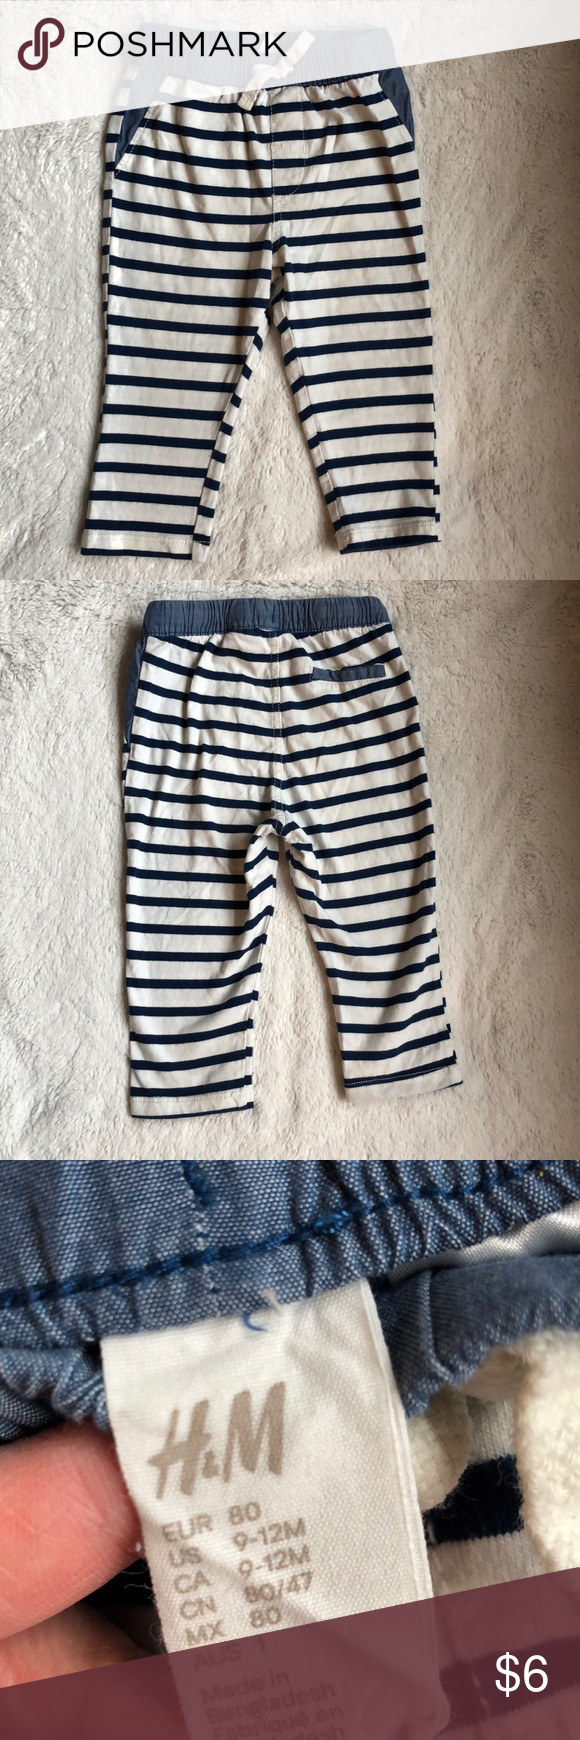 Excellent Condition 9-12 Months Nice Baby Boy Trousers